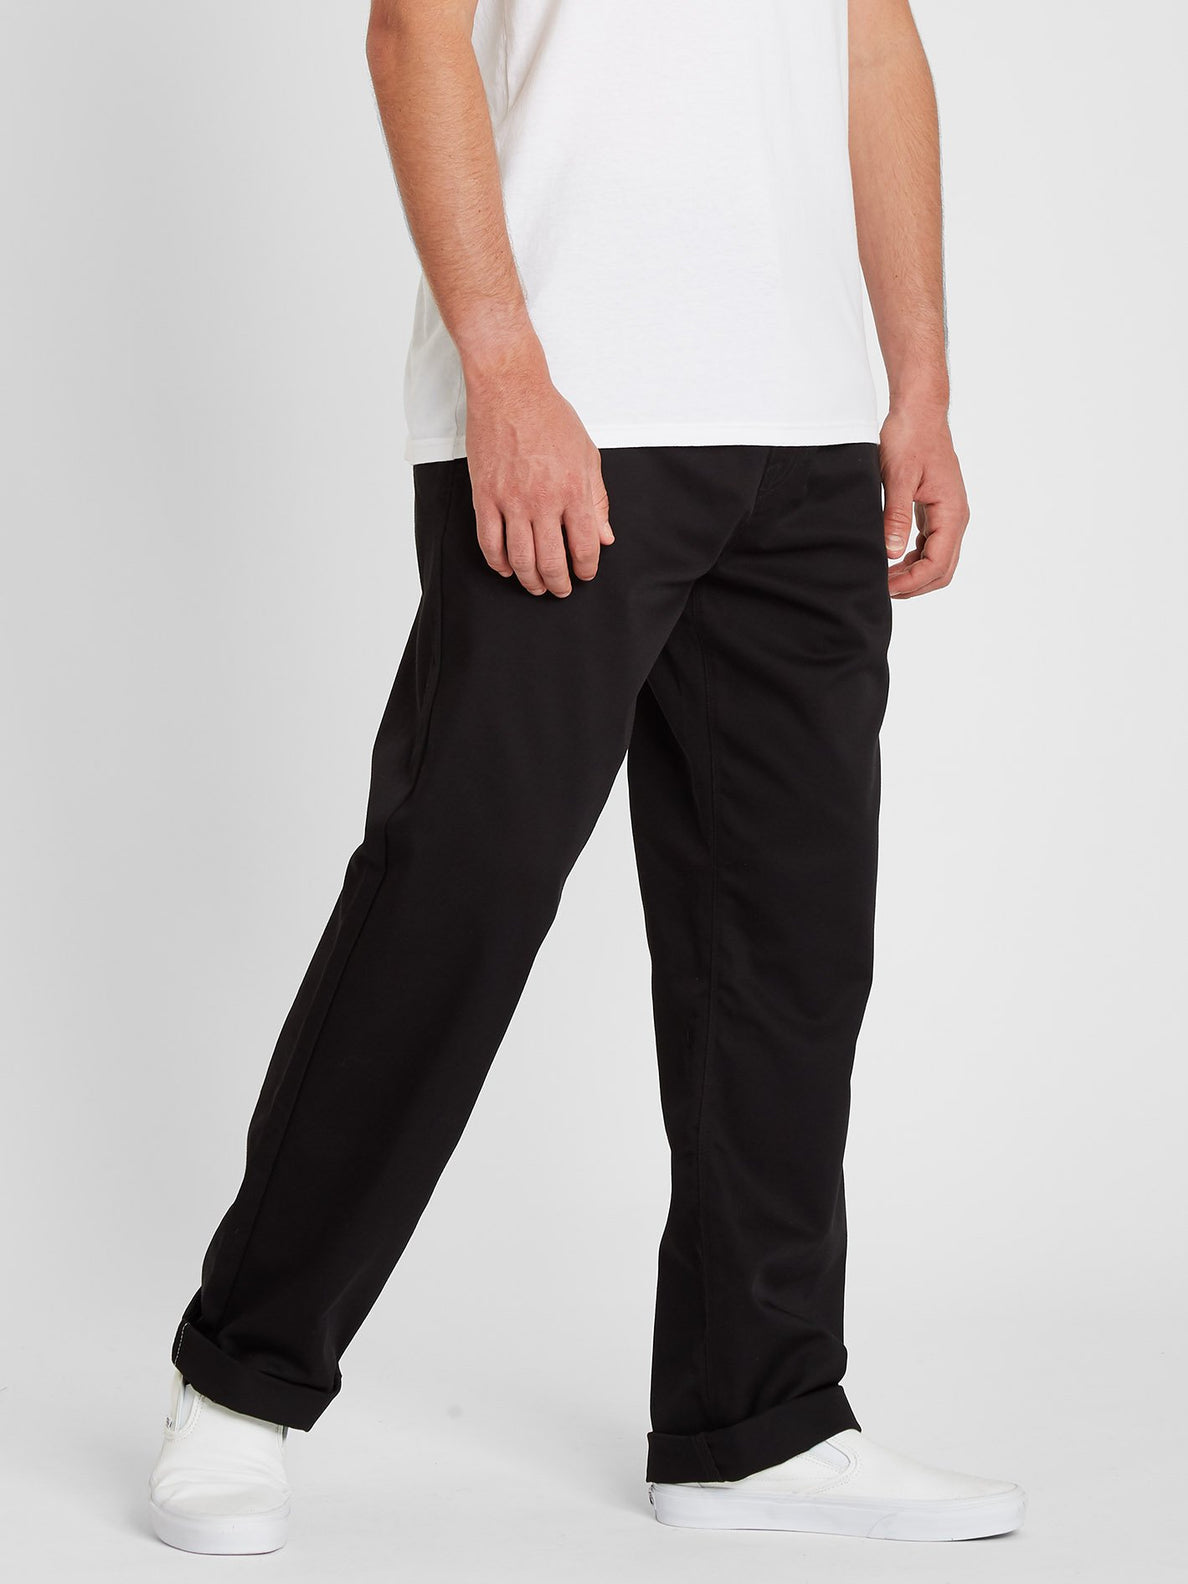 Substance Chino Pant - Black (A1112104_BLK) [3]